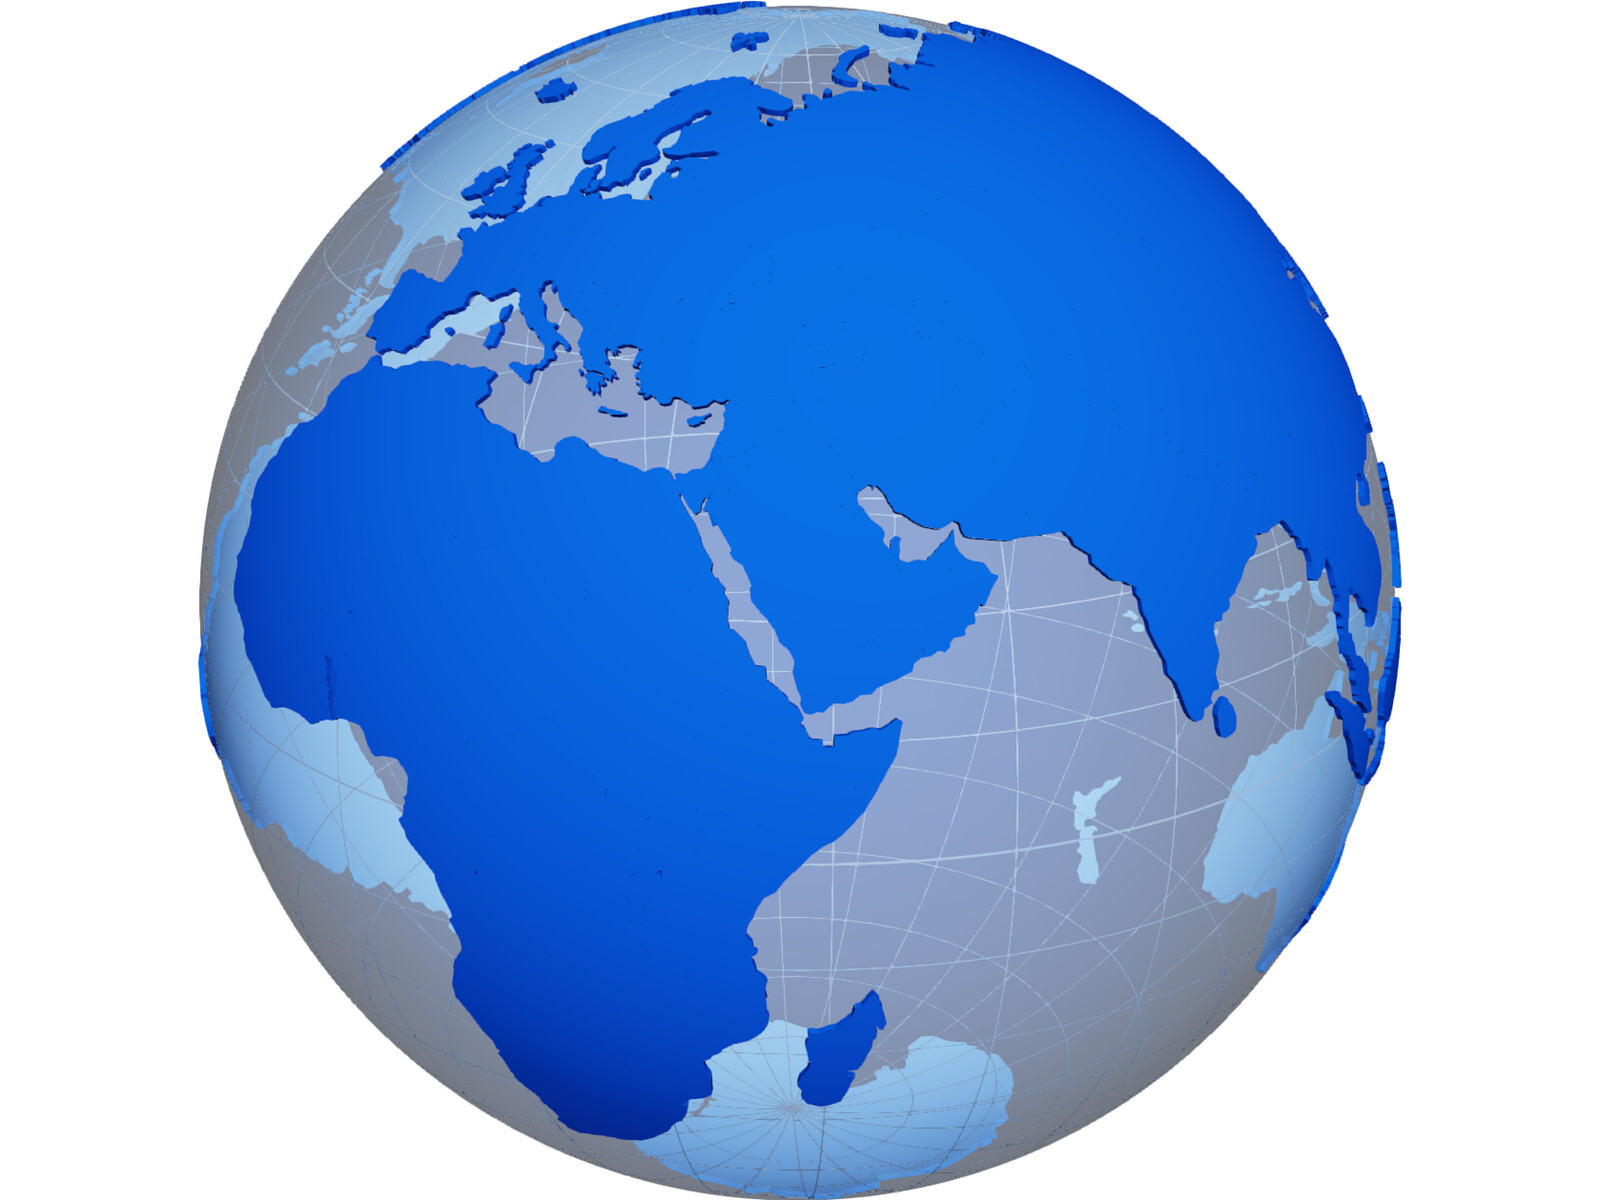 Globe map geopolitical extruded 3d model 3d cad browser globe map geopolitical extruded 3d model gumiabroncs Choice Image